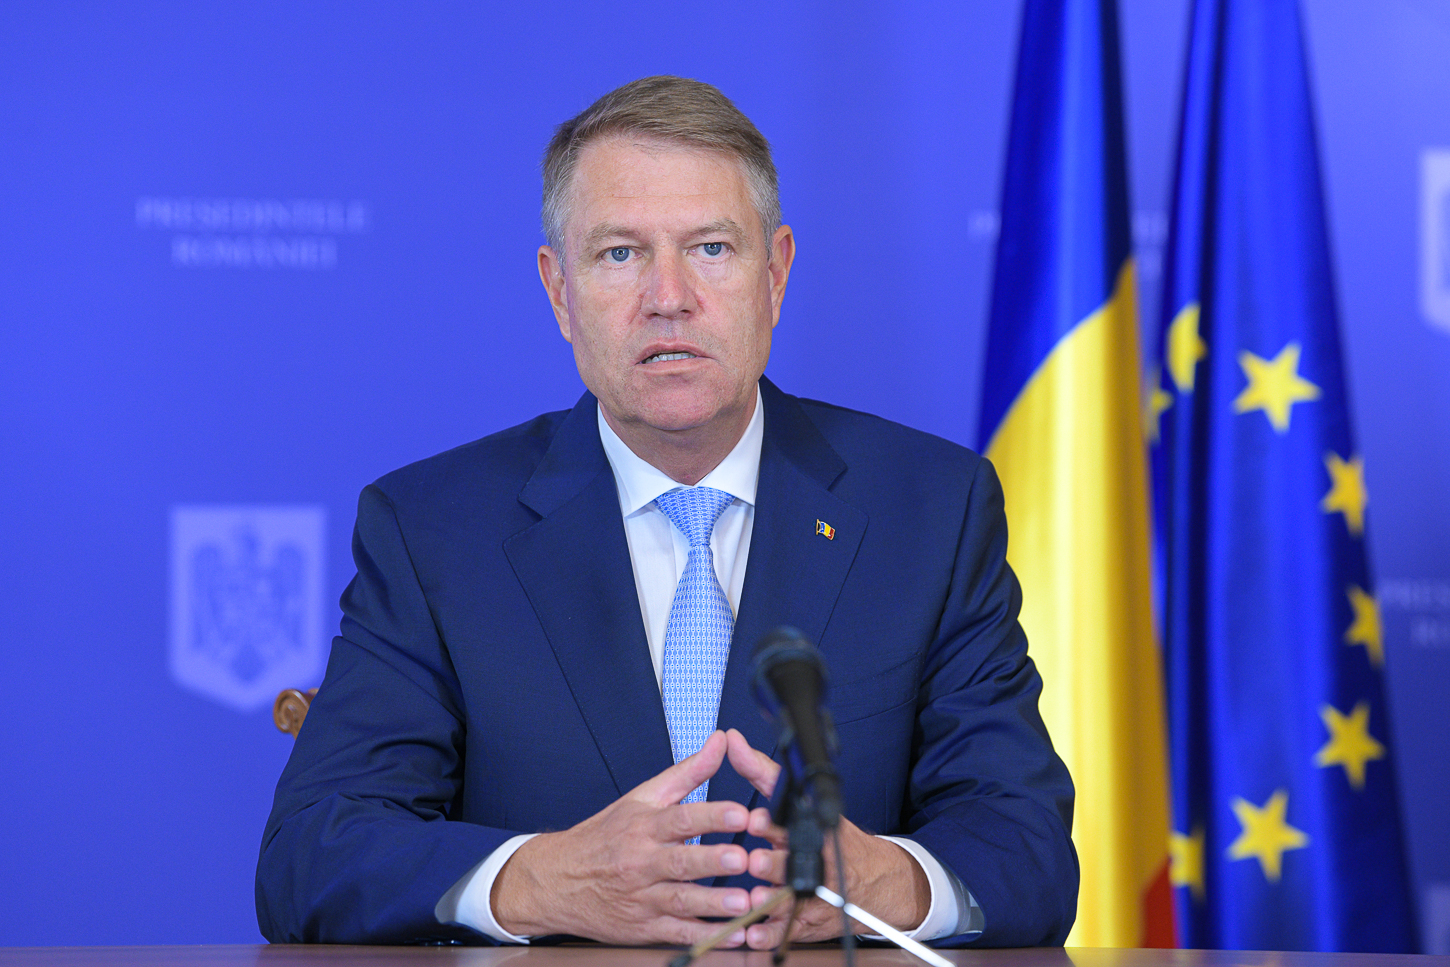 klaus-iohannis-the-laws-of-justice-must-be-fixed